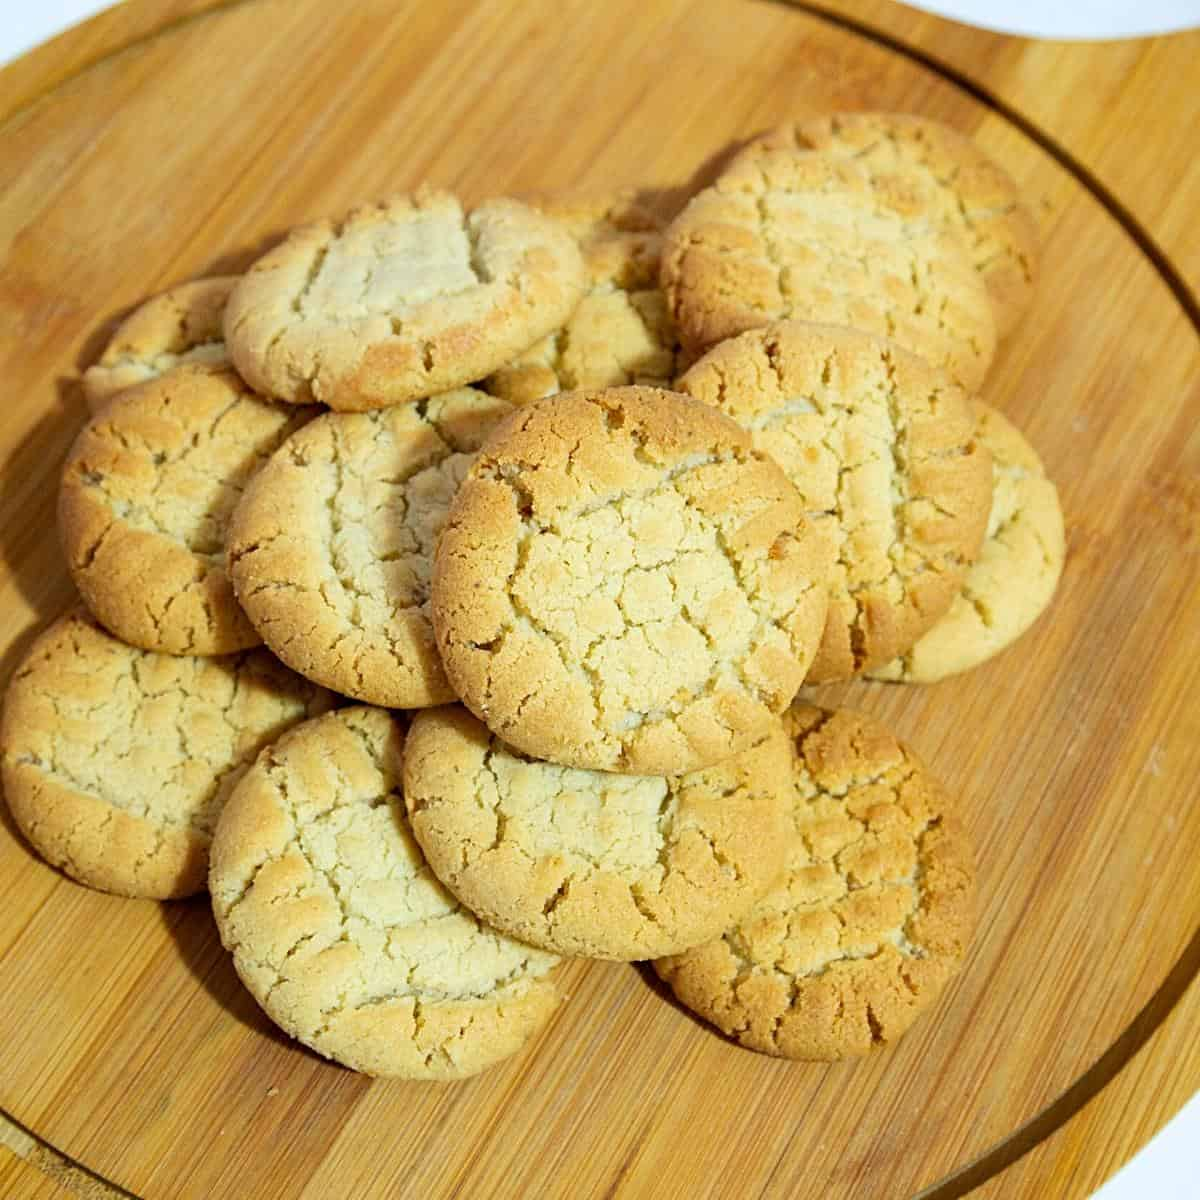 A stack of cookies on a wooden board.